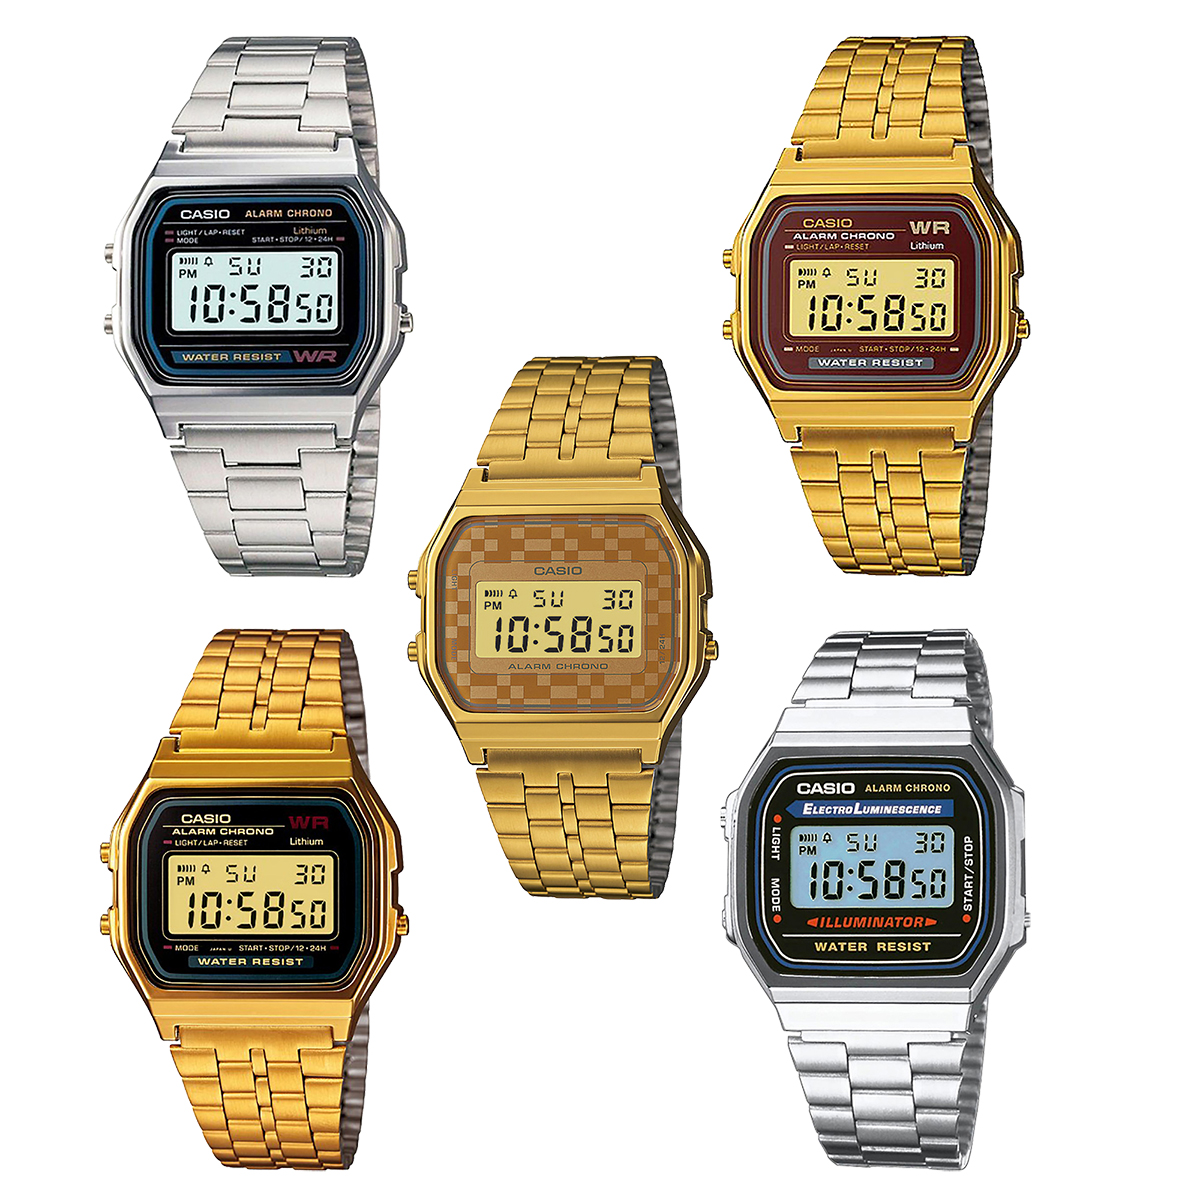 casio uhr f 105w 1a retro digital armbanduhr herren damen. Black Bedroom Furniture Sets. Home Design Ideas